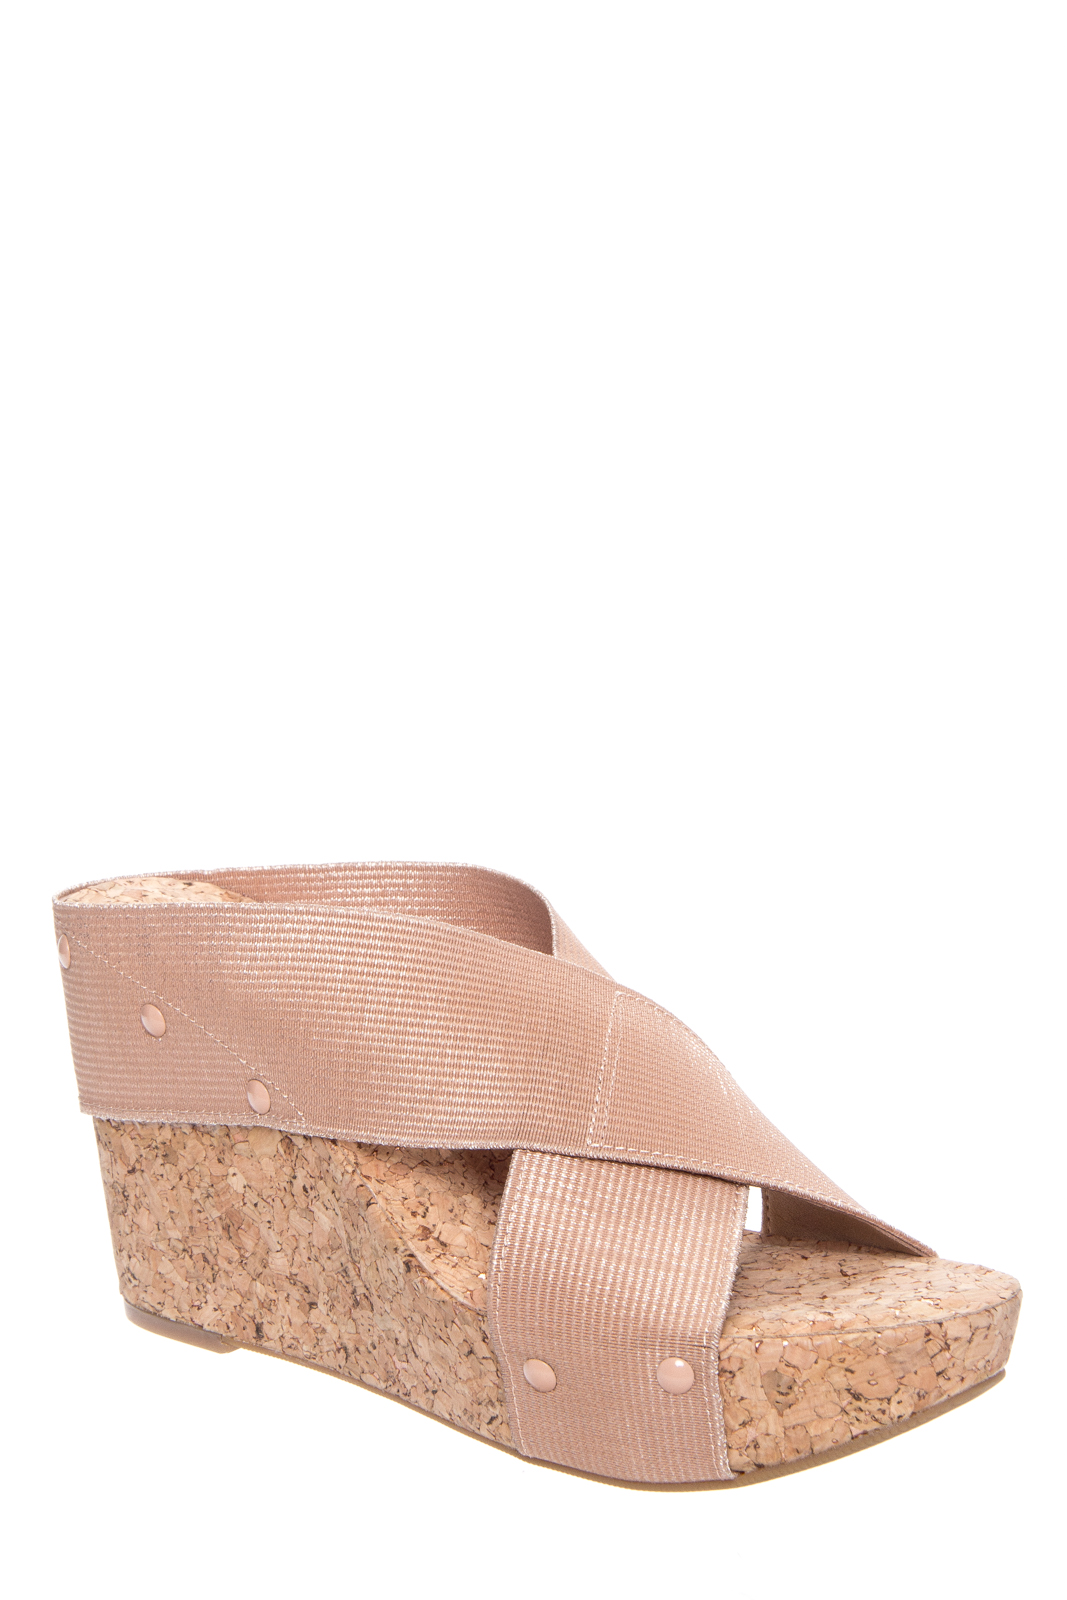 Lucky Brand Miller2 Slip On Wedge Sandals - Blush / Champagne